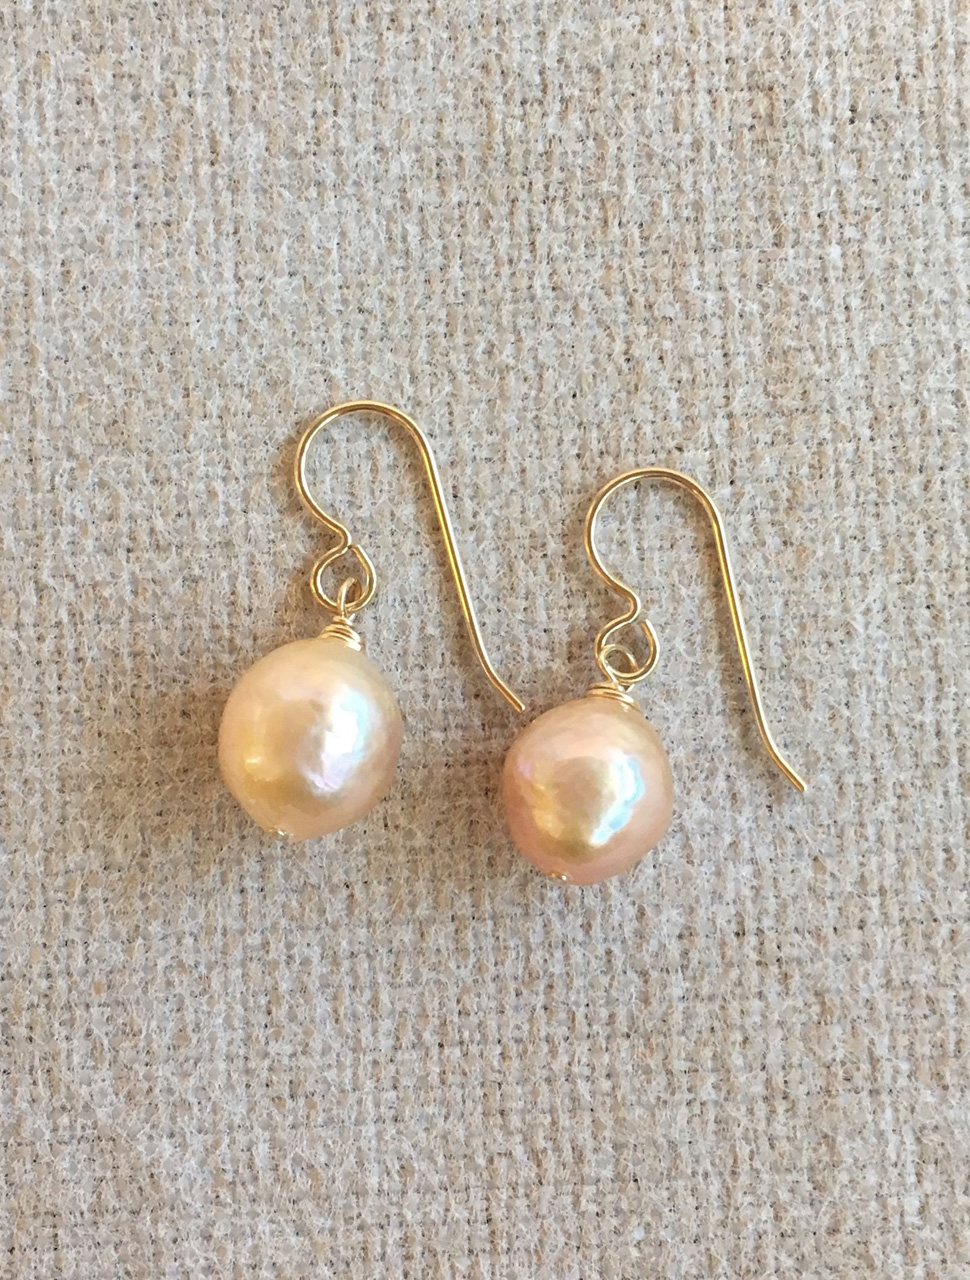 Gold Filled Cream Freshwater Pearl Earrings by Christi Cafferata